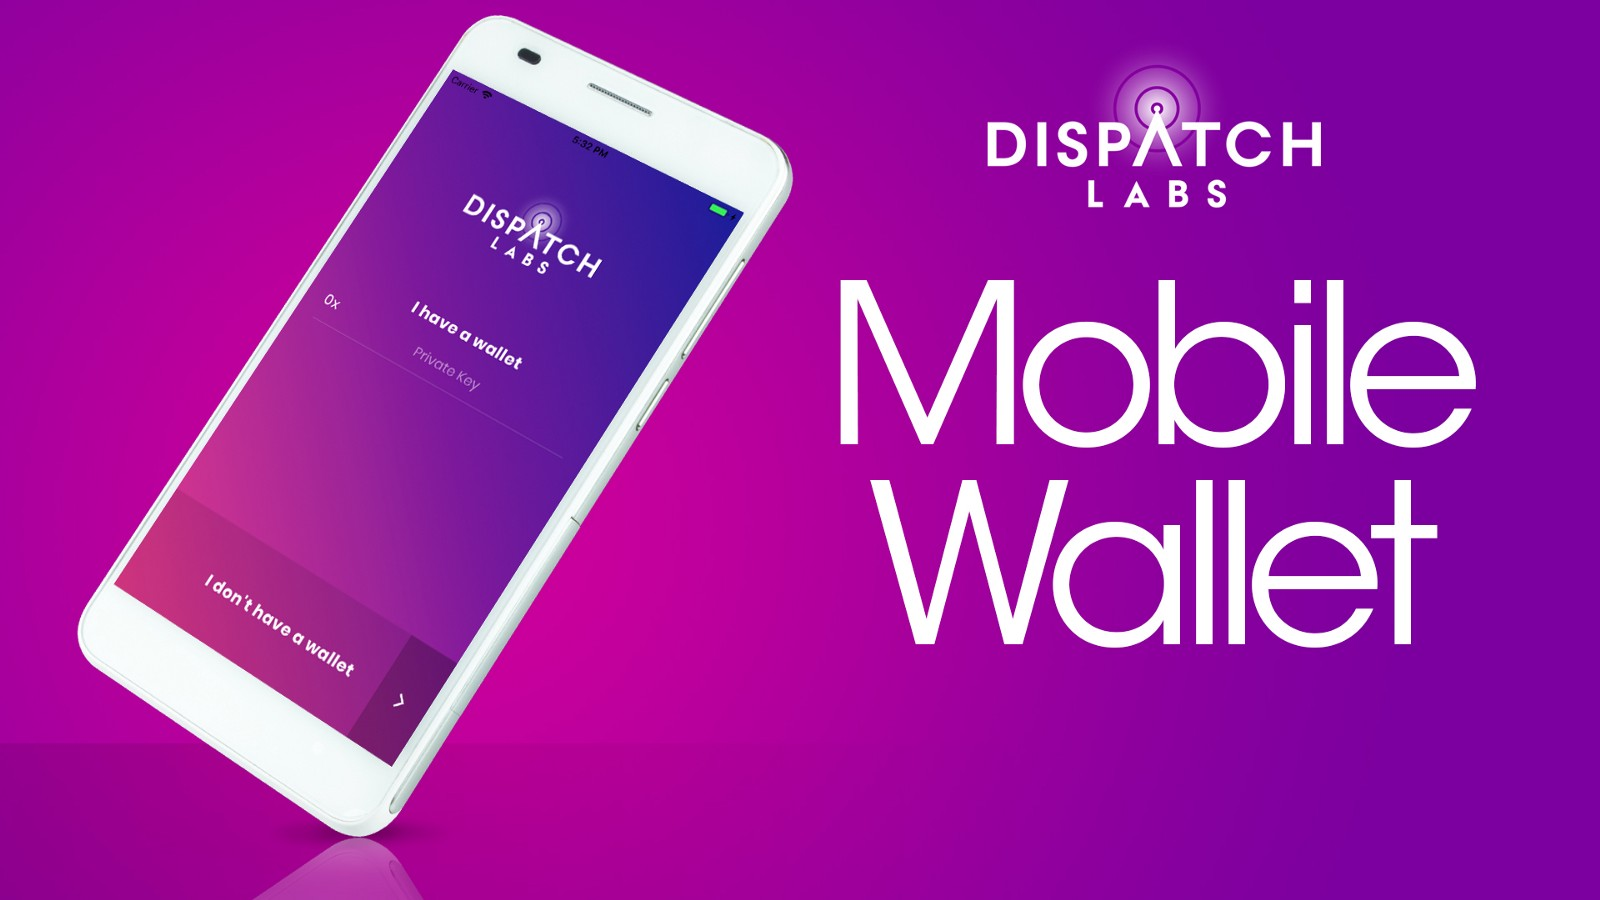 The Dispatch Mobile Wallet Is Here Your Giddiness Is Understandable